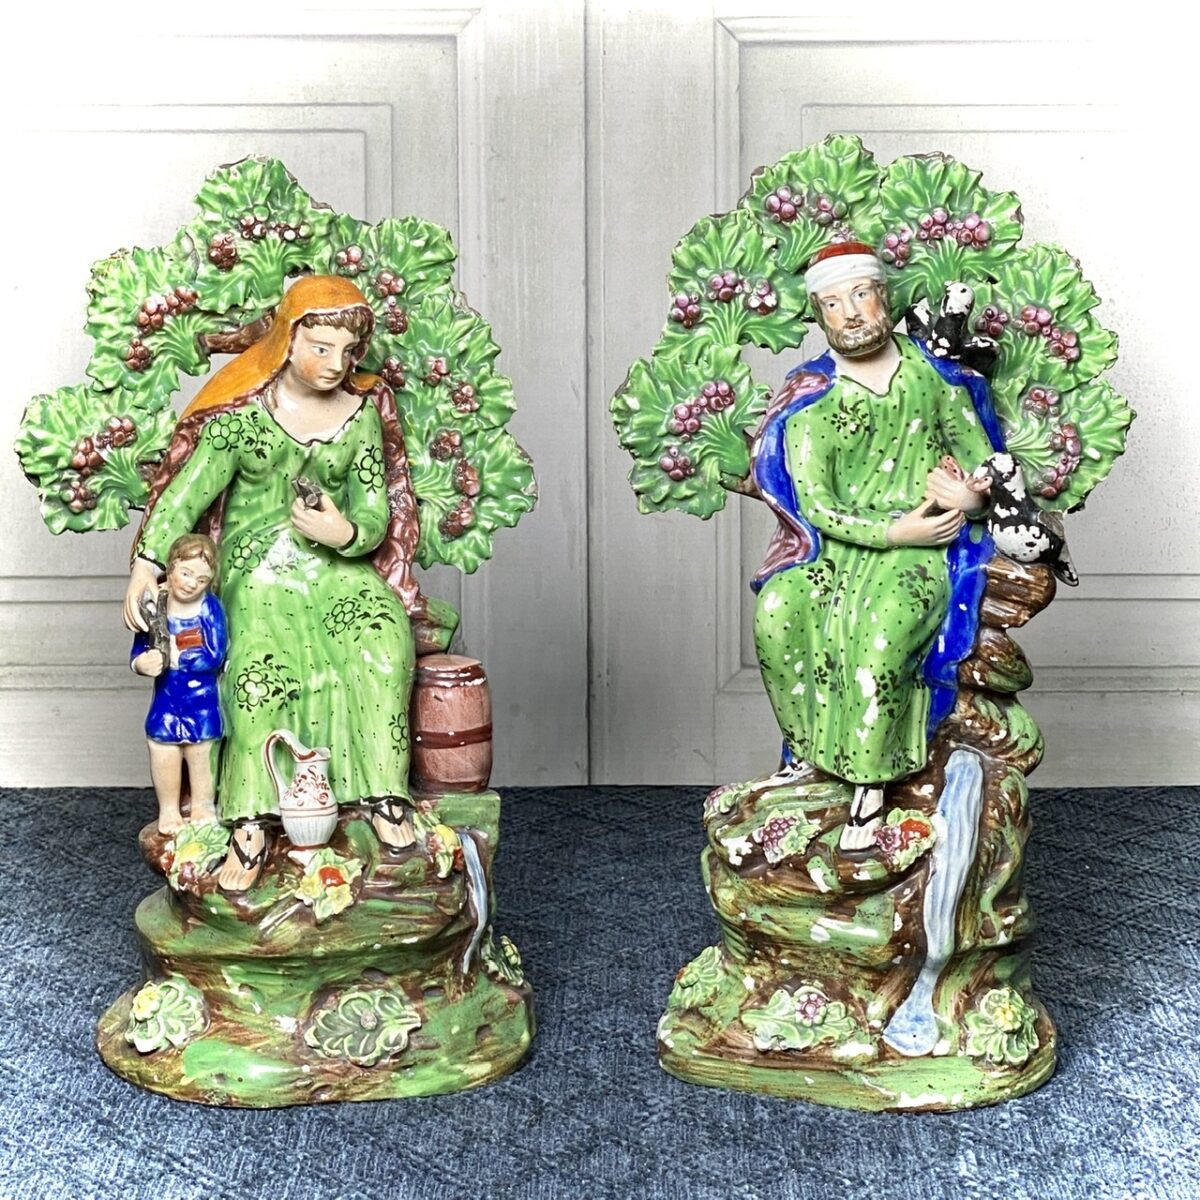 Early Staffordshire Pottery Figures – Elijah and Widow.